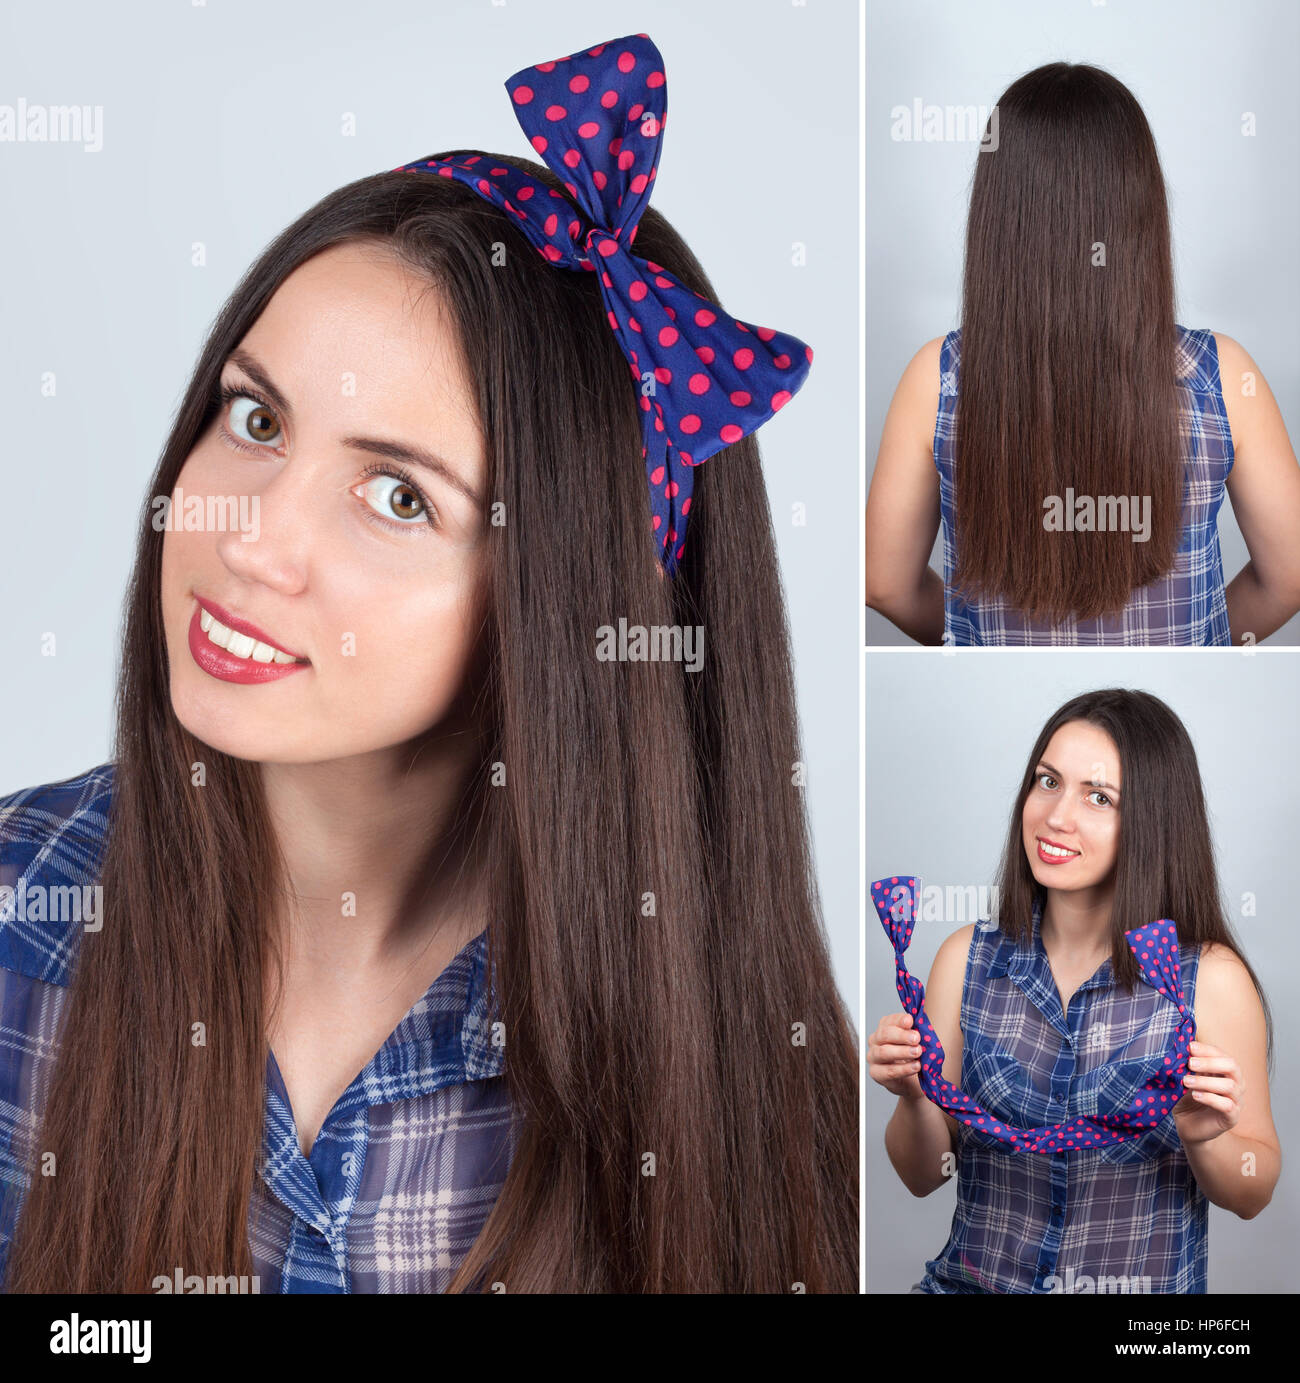 Simple Hairstyle For Long Hair Tutorial Hairstyle For Long Hair Stock Photo Alamy